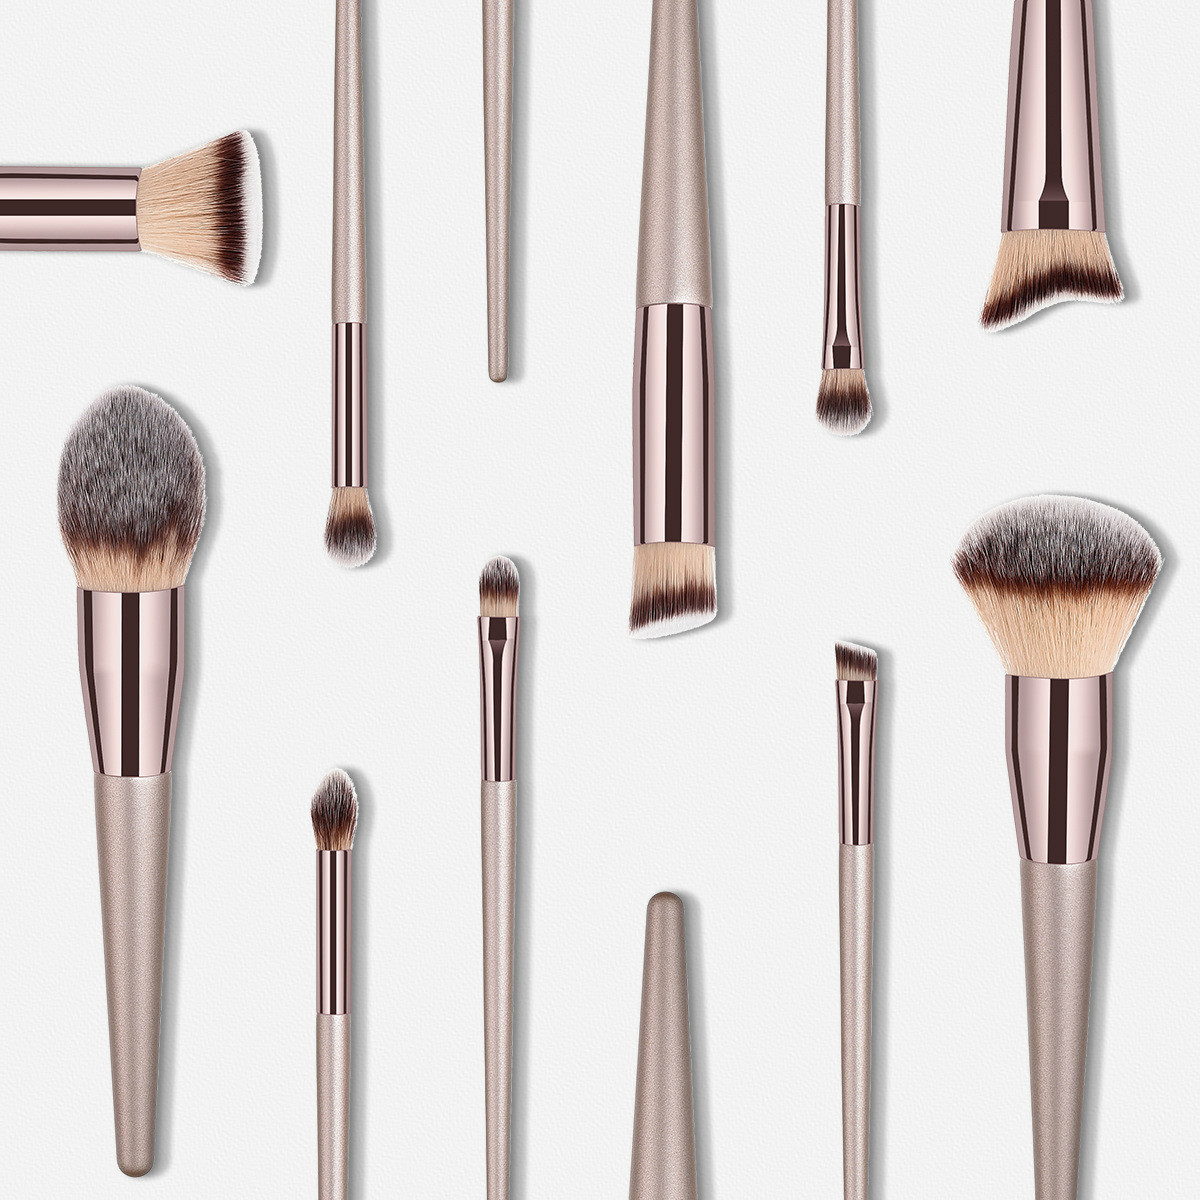 Luxury Champagne Makeup Brushes Set For Foundation Powder Blush Eyeshadow Concealer Lip Eye Make Up Brush Cosmetics Beauty Tools 3